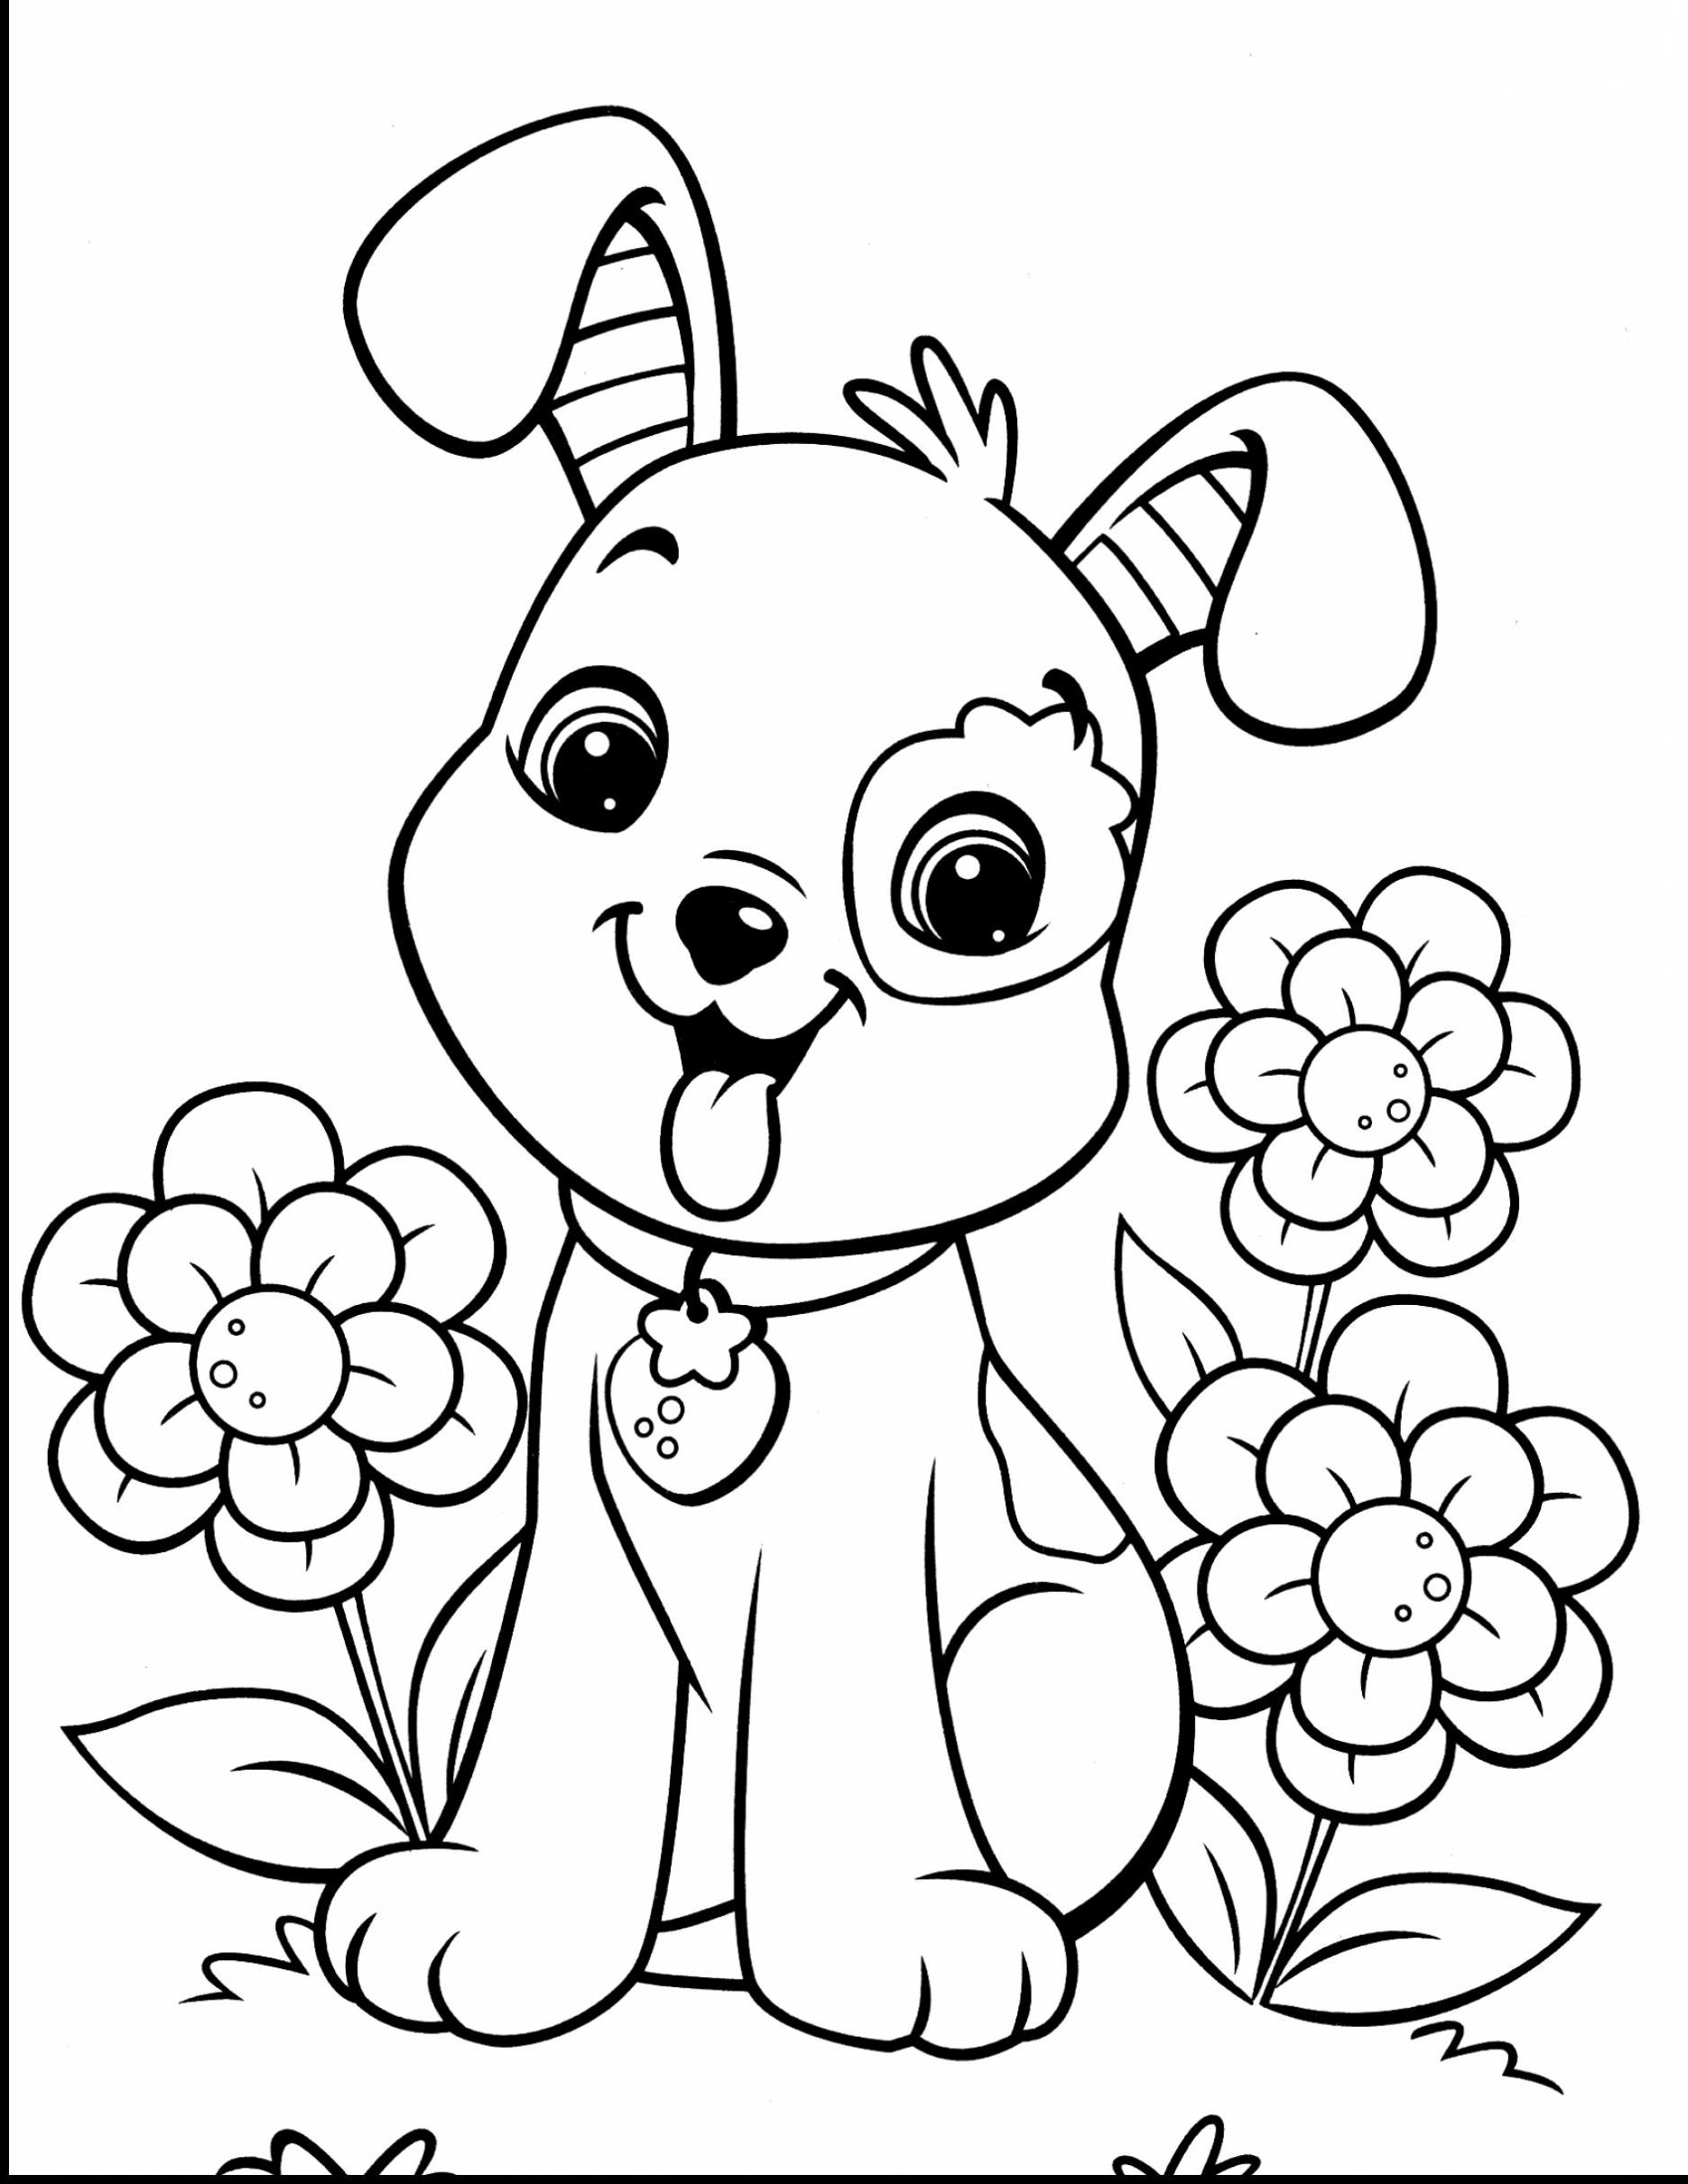 cute dogs coloring pages dog coloring pages adults at getdrawings free download dogs coloring pages cute